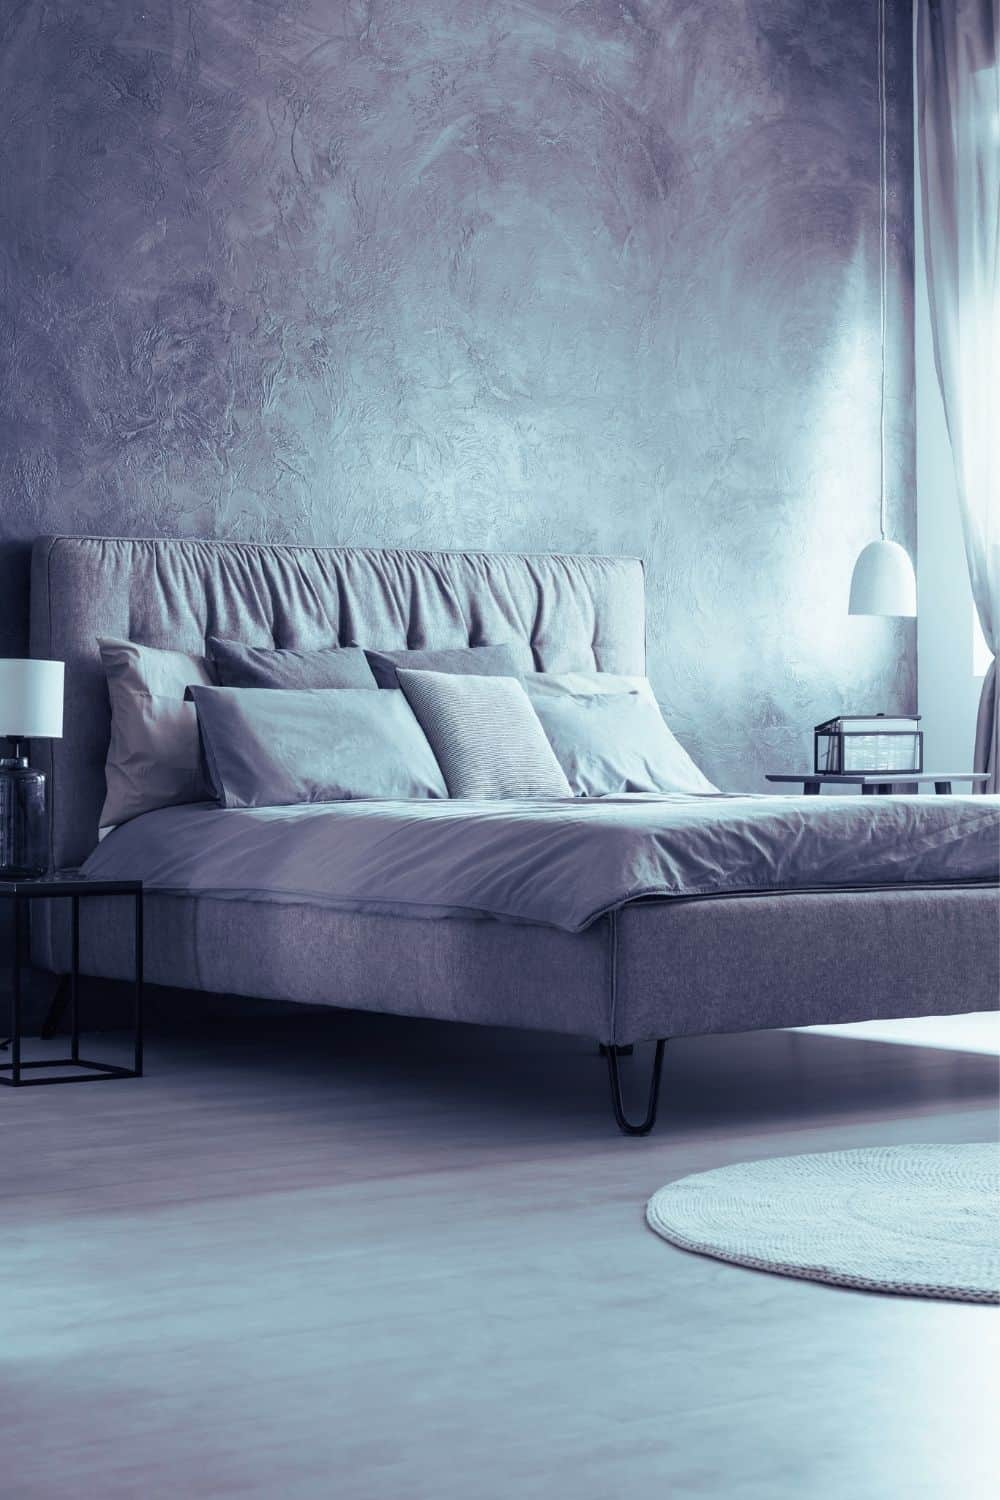 wake up refreshed + discover how to sleep better - bed in room